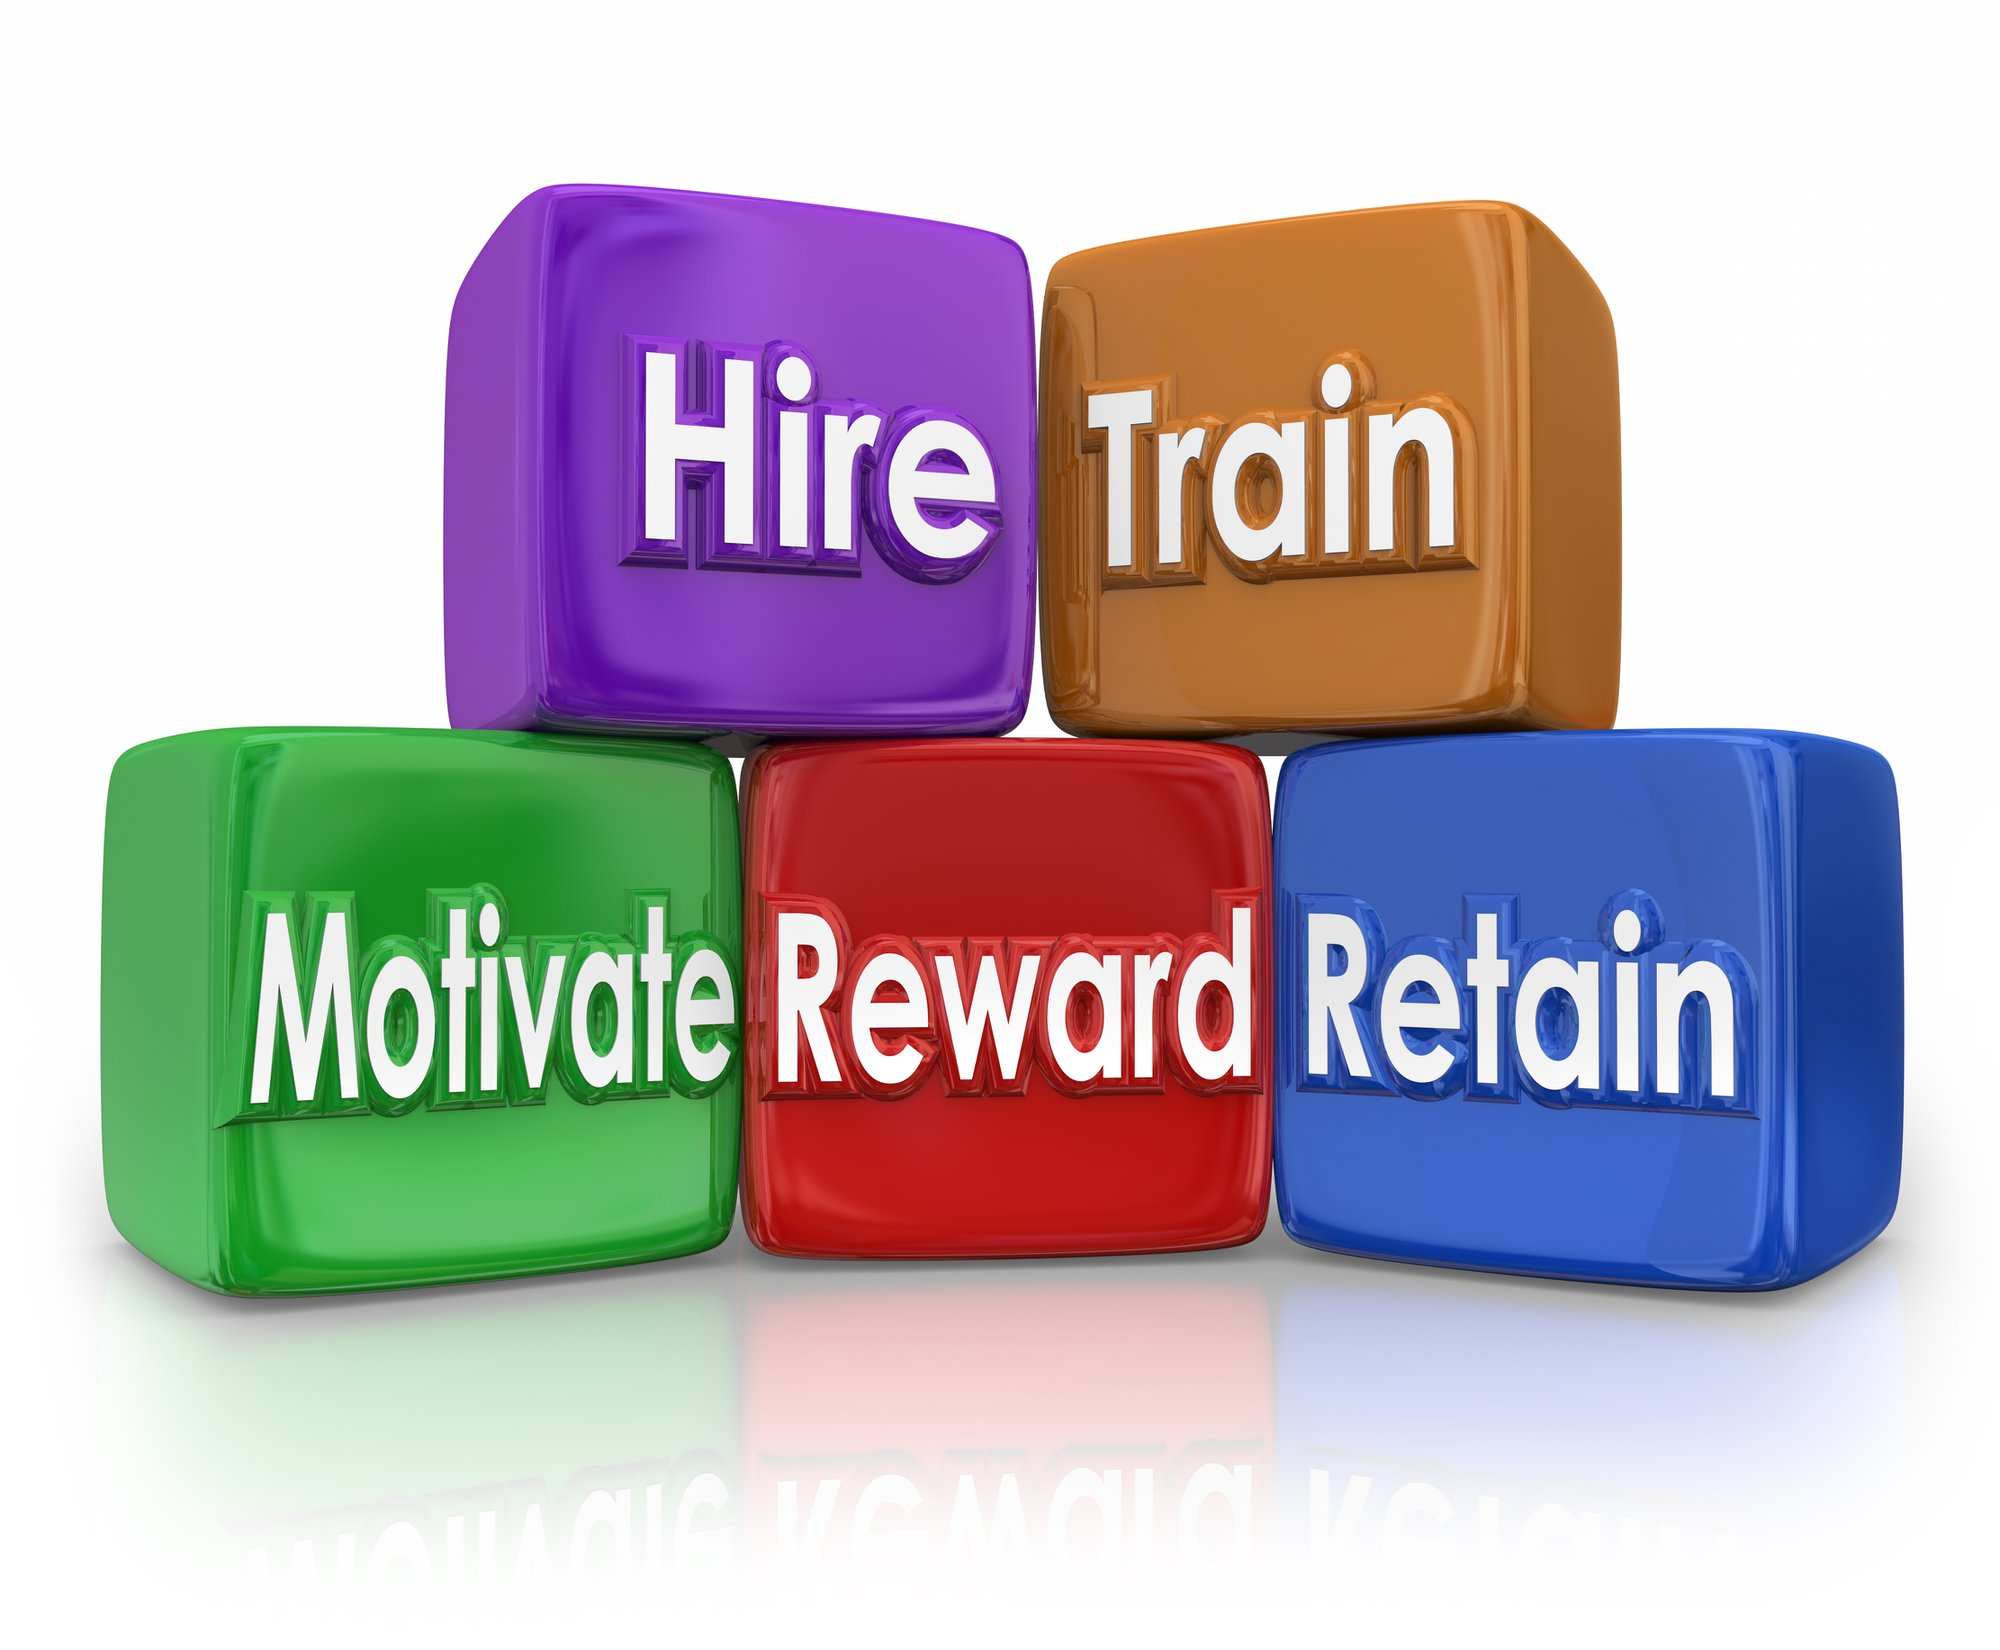 Digital Marketing Challenges - Hire, Train, Motivate, Reward and Retain human resources blocks to illustrate mission or goal of hr team or department in devleoping employees or workforce